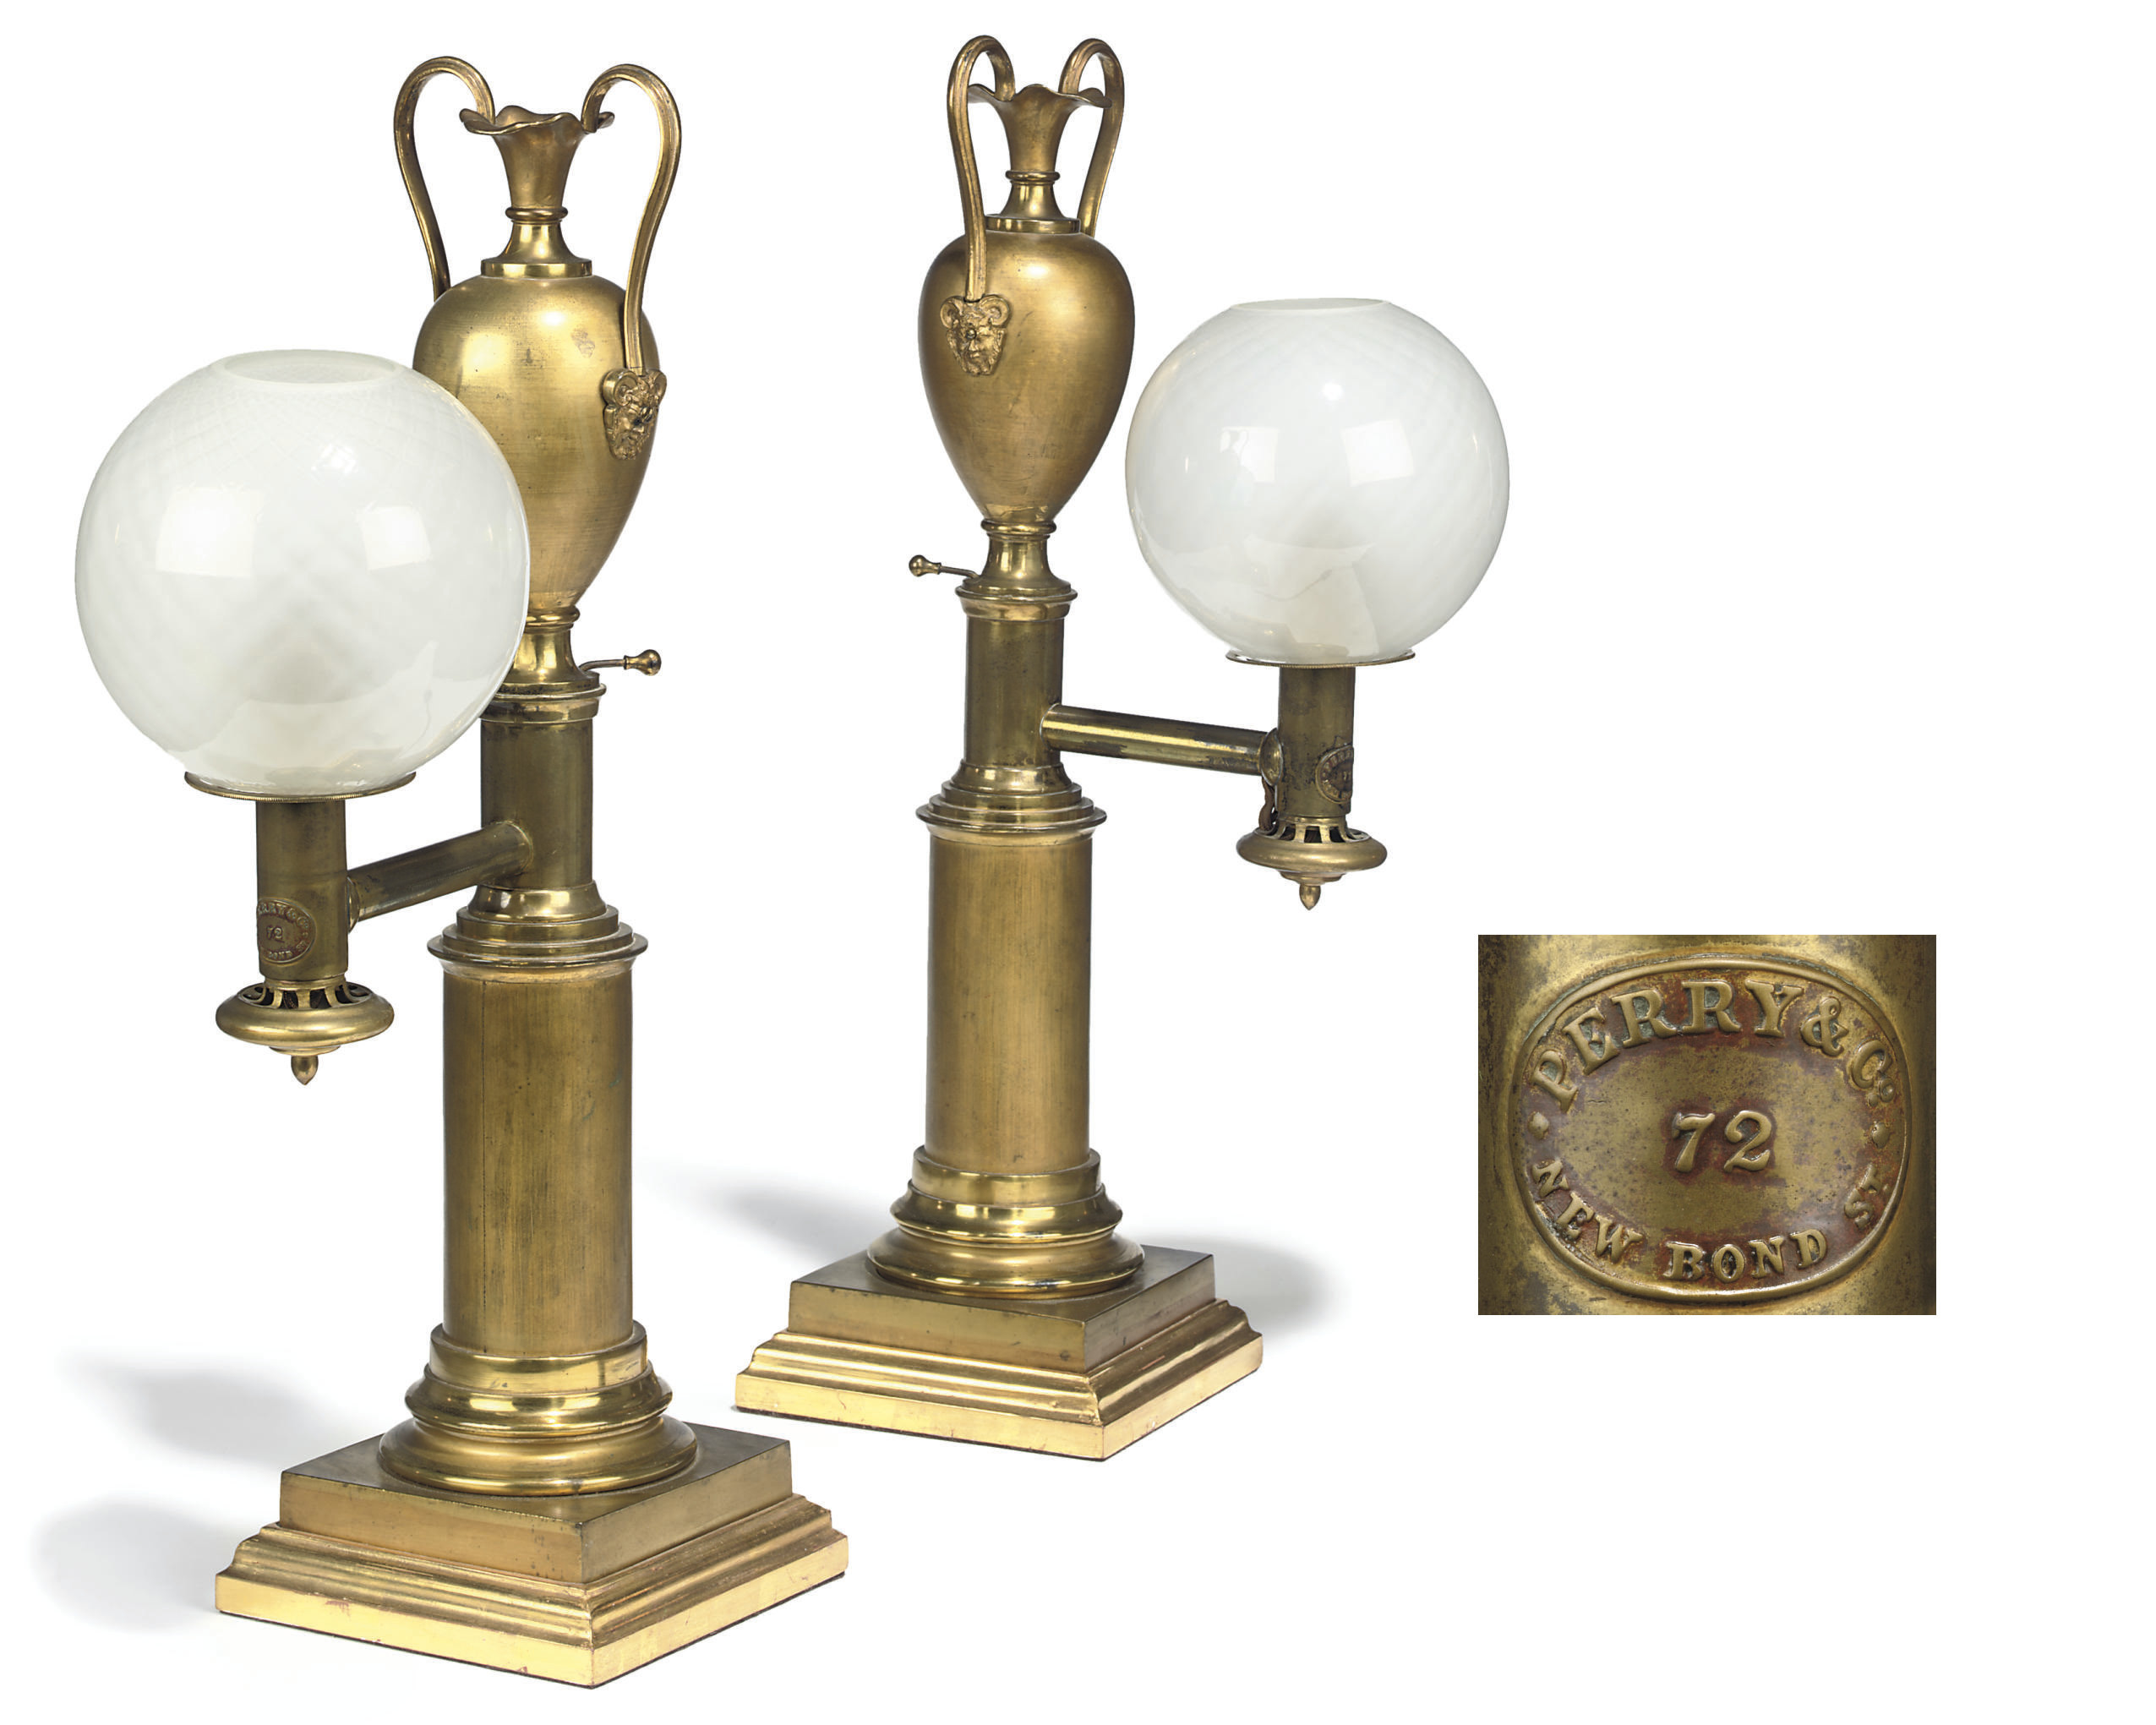 A PAIR OF WILLIAM IV COLZA OIL LAMPS